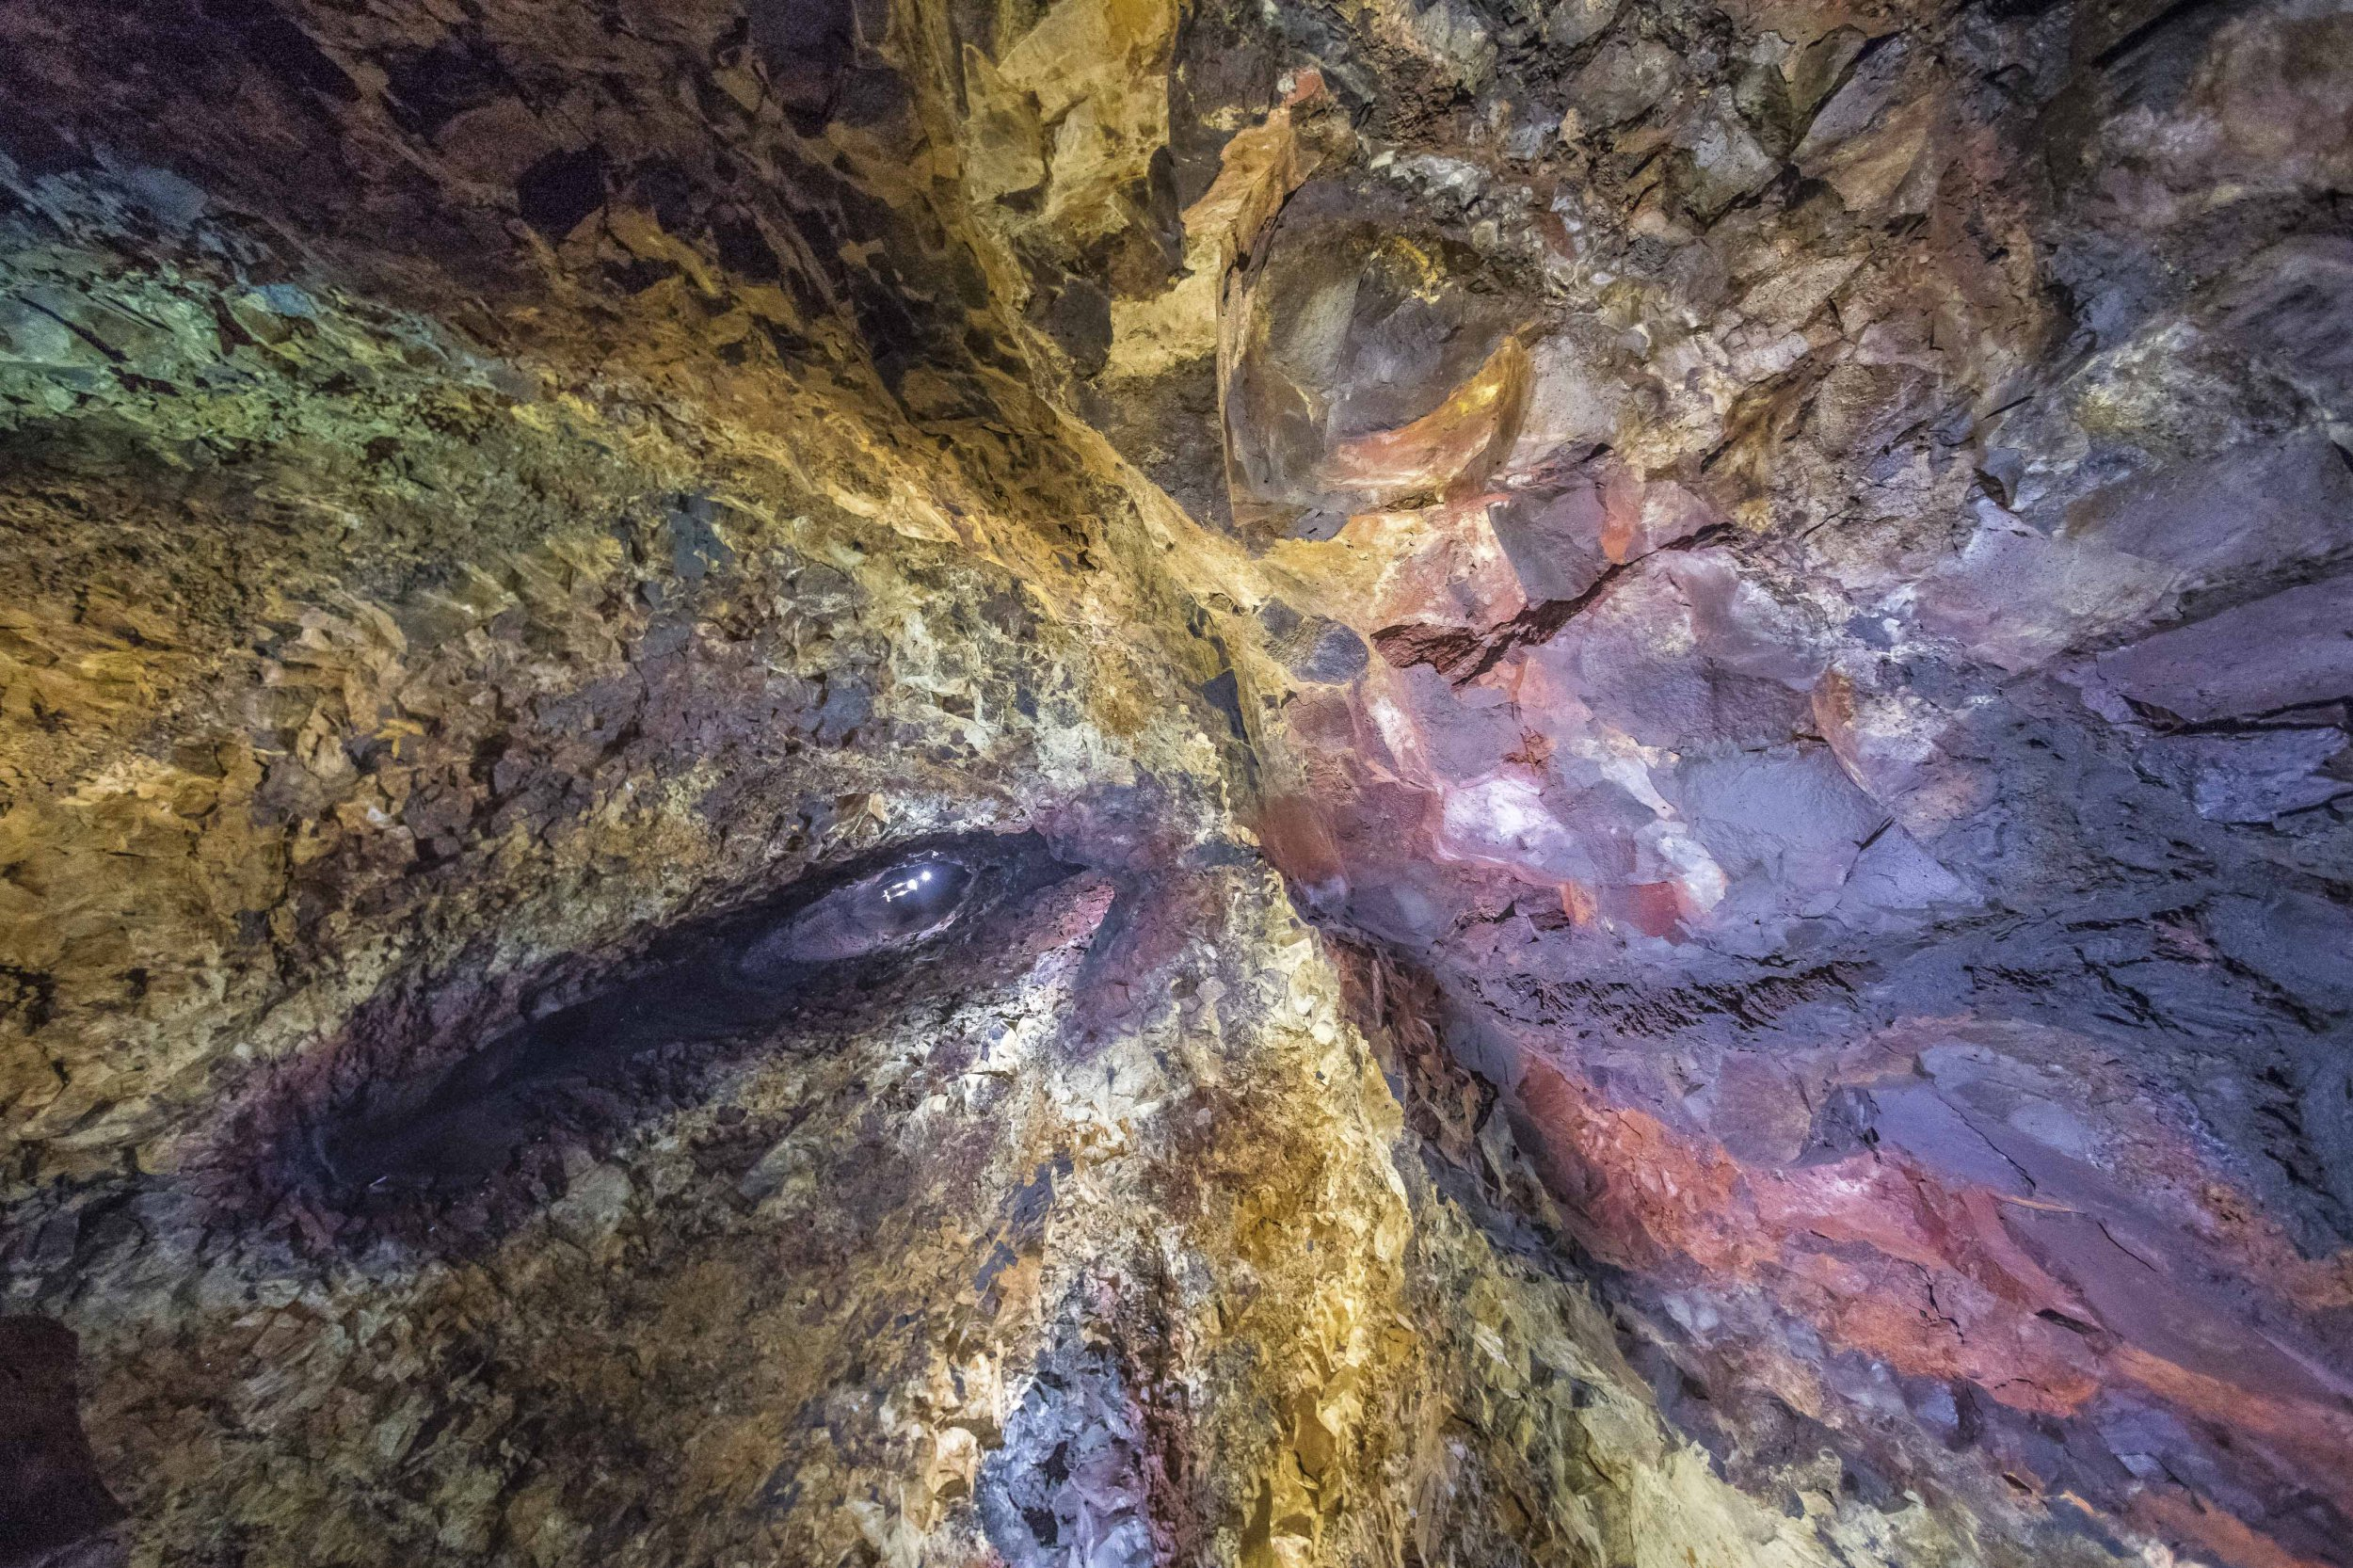 PIC FROM Florian Ledoux/Caters News - (PICTURED: Images showing the colourful cave walls in Iceland.) - Due to the last eruption, beautiful colours have been spread across these cave walls and the result is magical. Florian Ledoux, 29, a wildlife Arctic photographer, from Reykjavik, Iceland captured the images in Iceland. SEE CATERS COPY